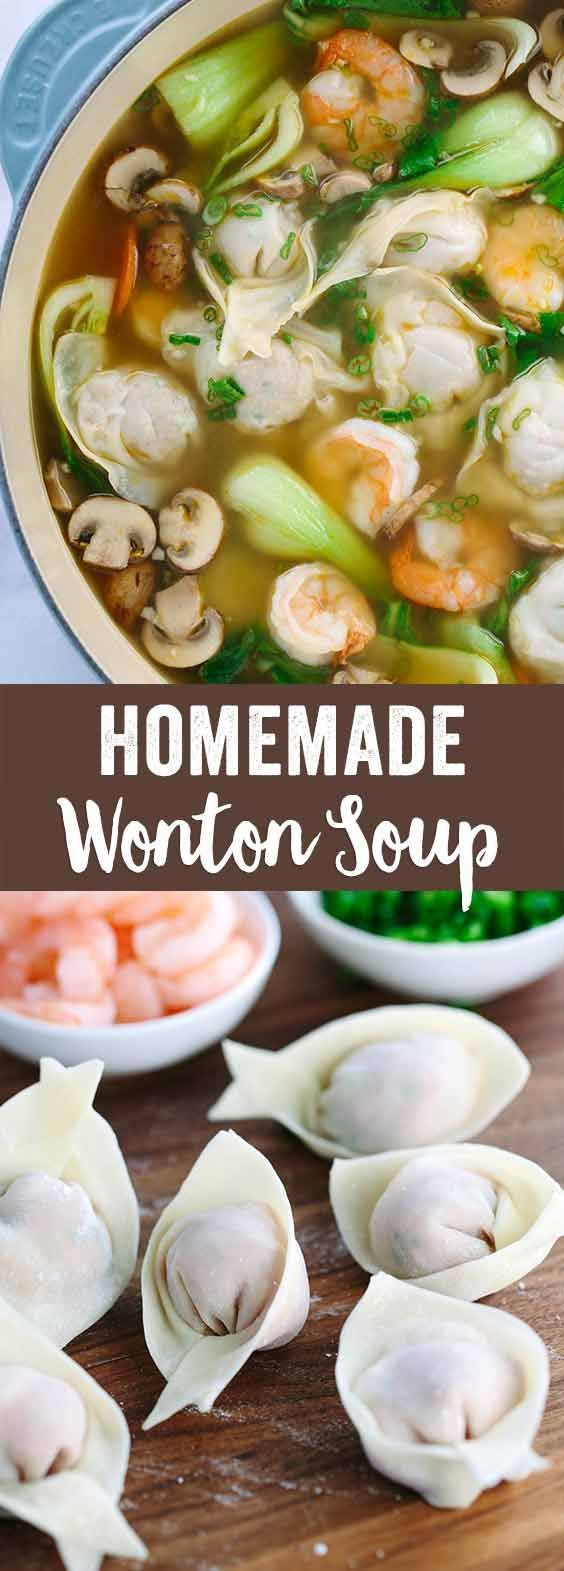 Easy Homemade Wonton Soup Recipe - Each hearty bowl is packed with plump pork dumplings, fresh vegetables and jumbo shrimp. This authentic Asian meal is fun to make! via /foodiegavin/